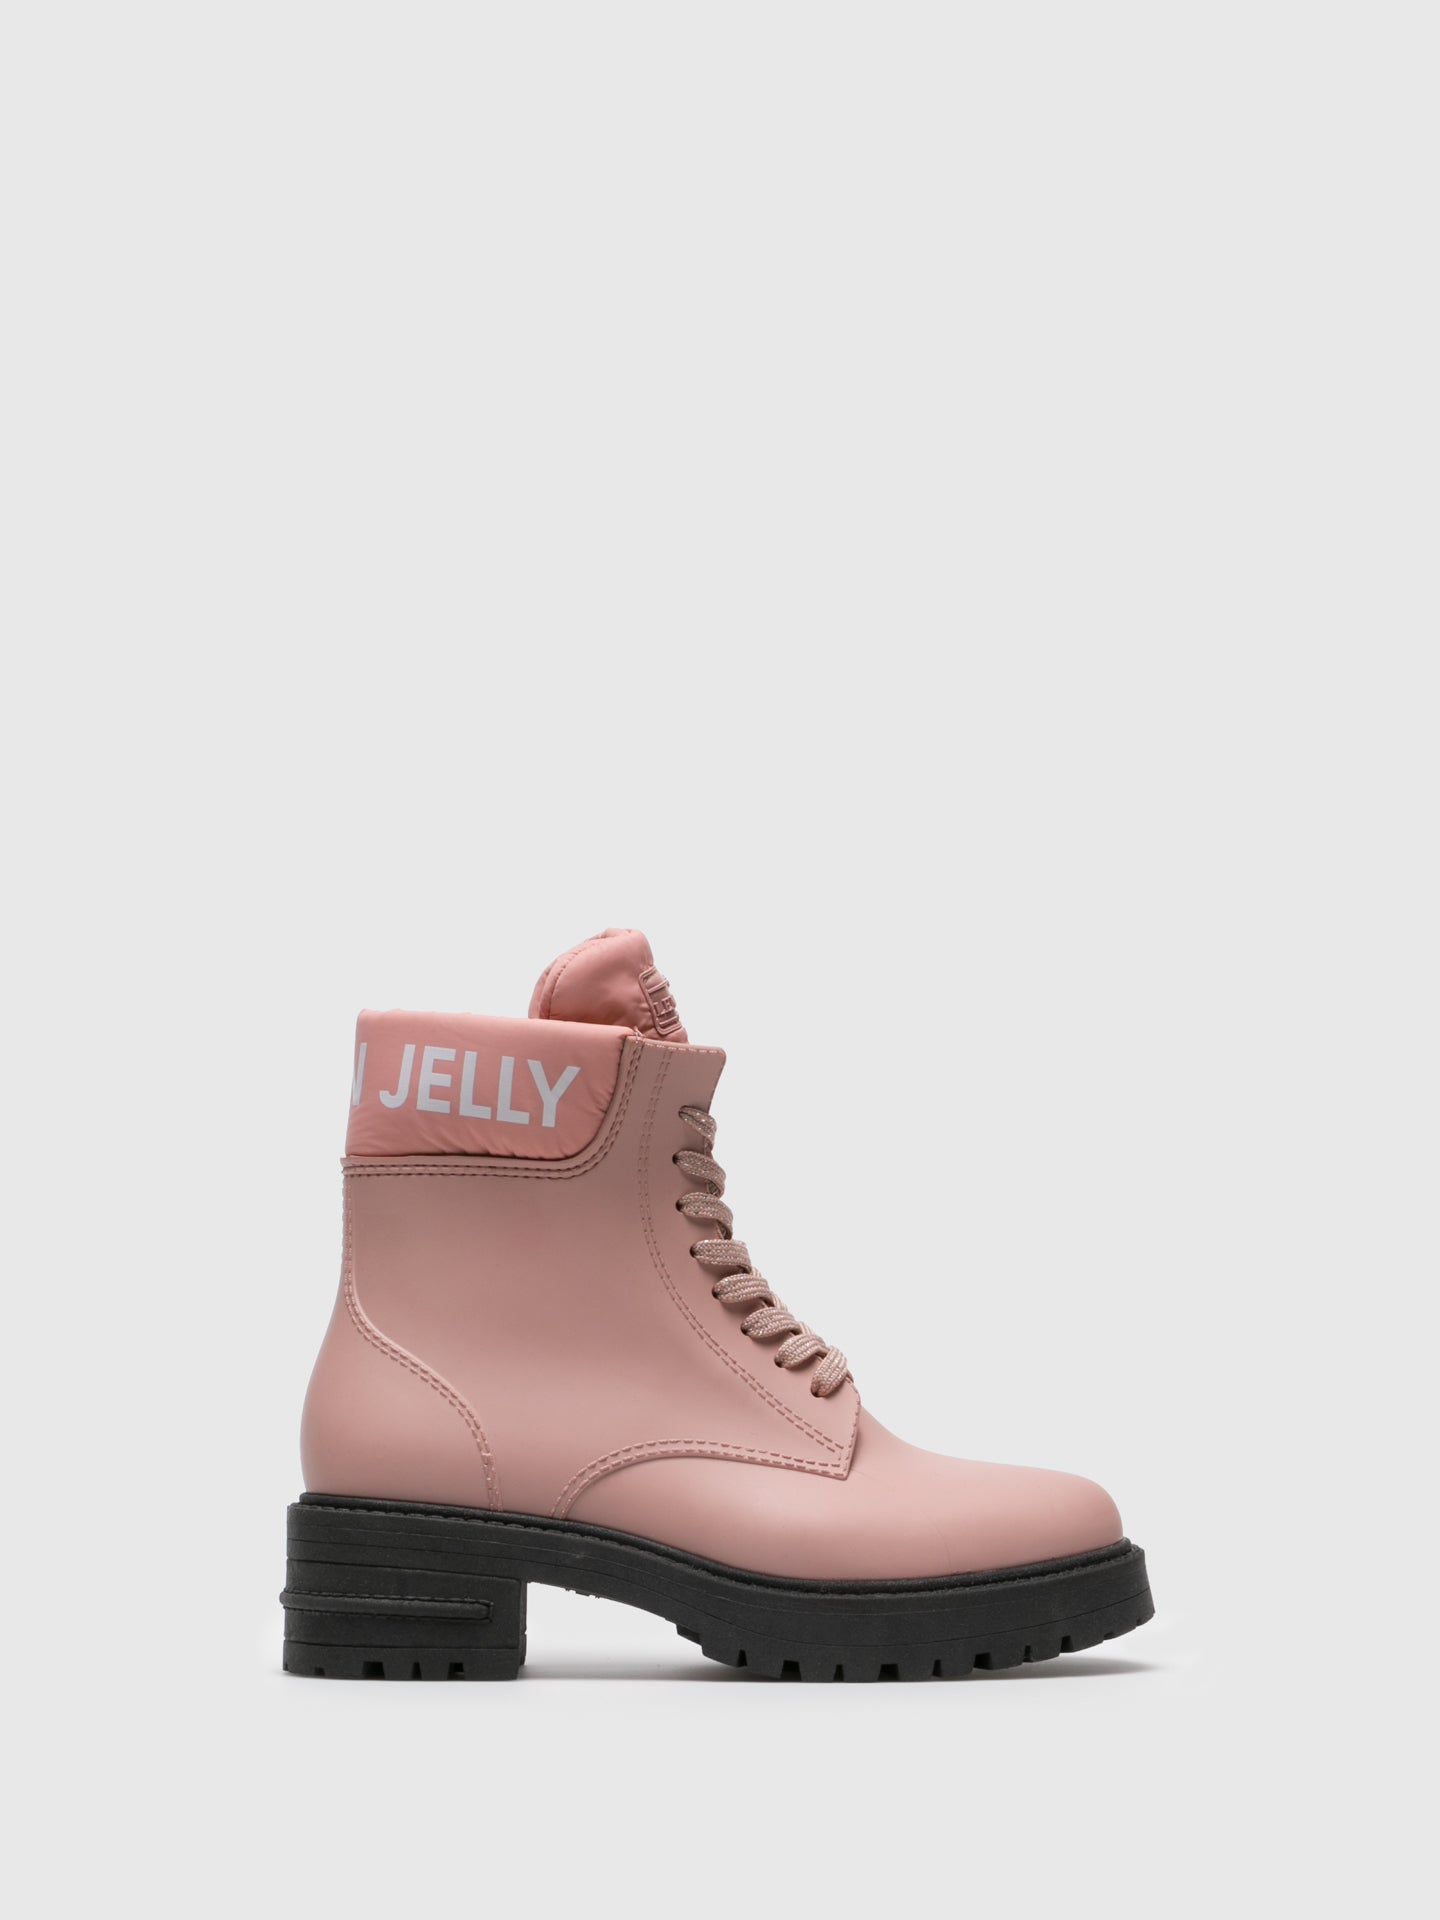 Lemon Jelly Pink Lace-up Ankle Boots